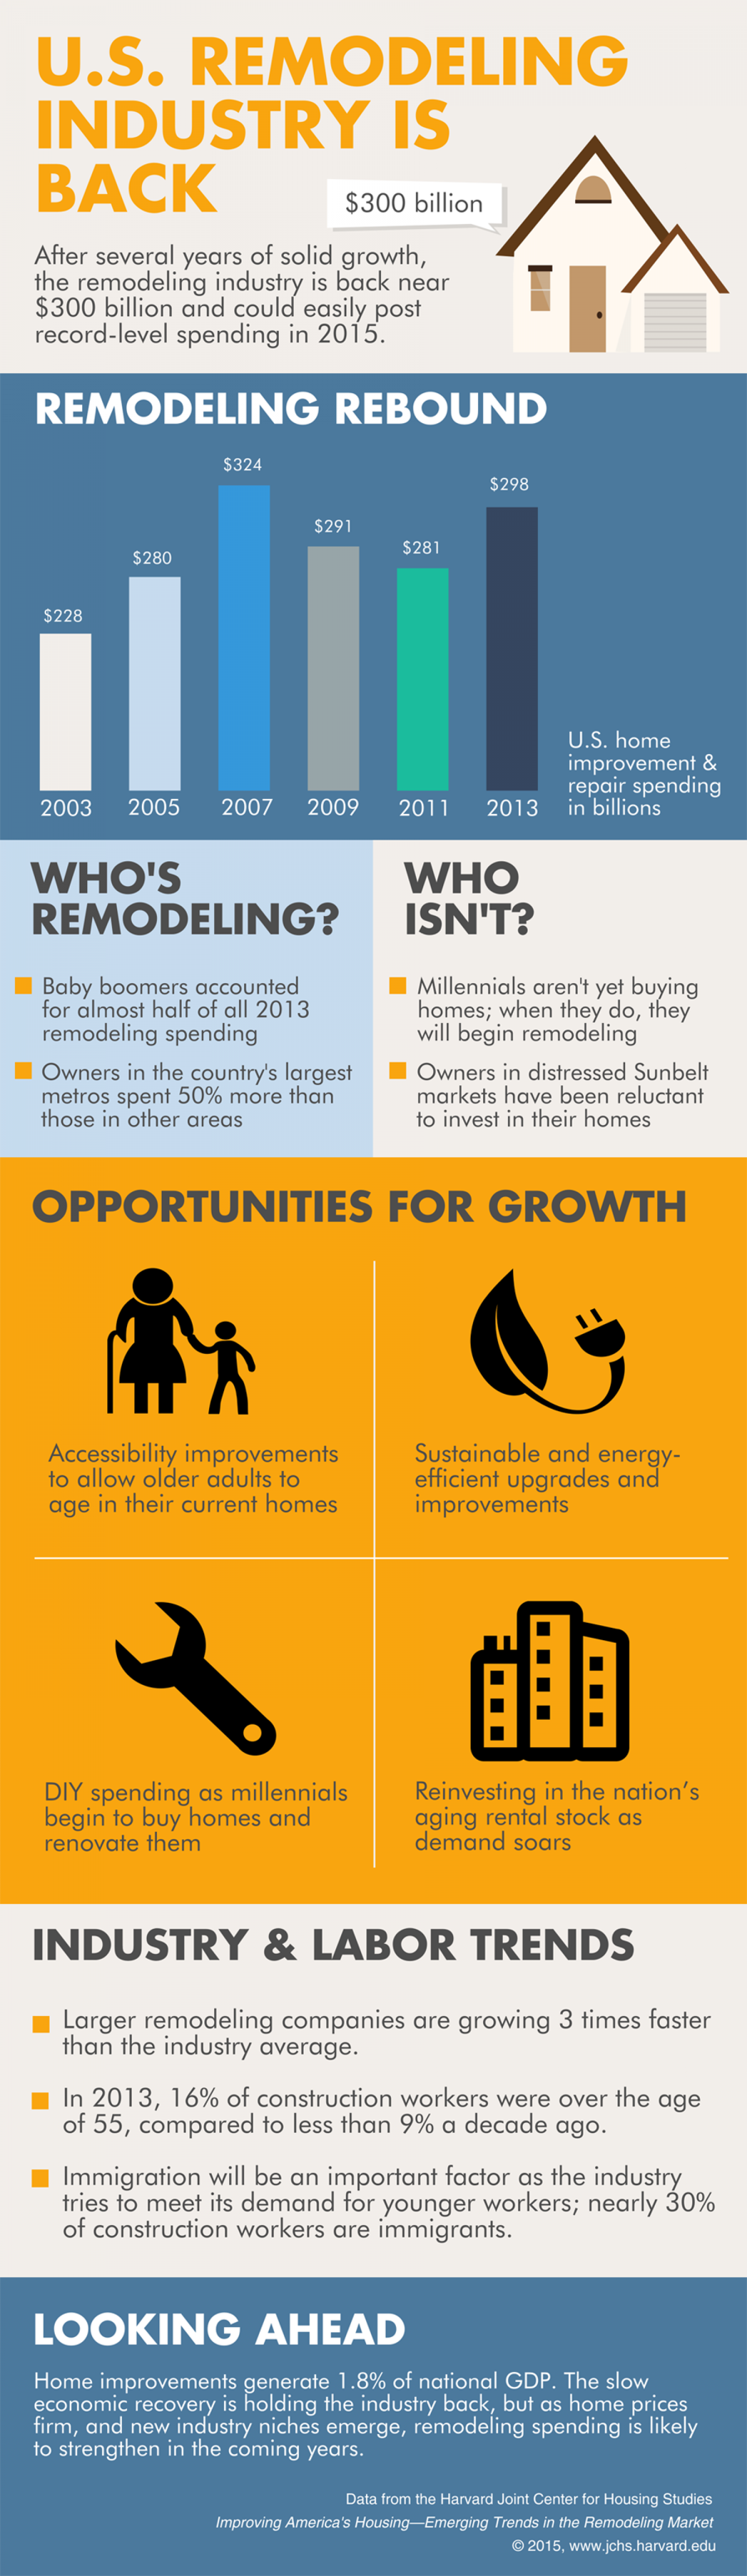 U.S. Remodeling Industry is Back Infographic